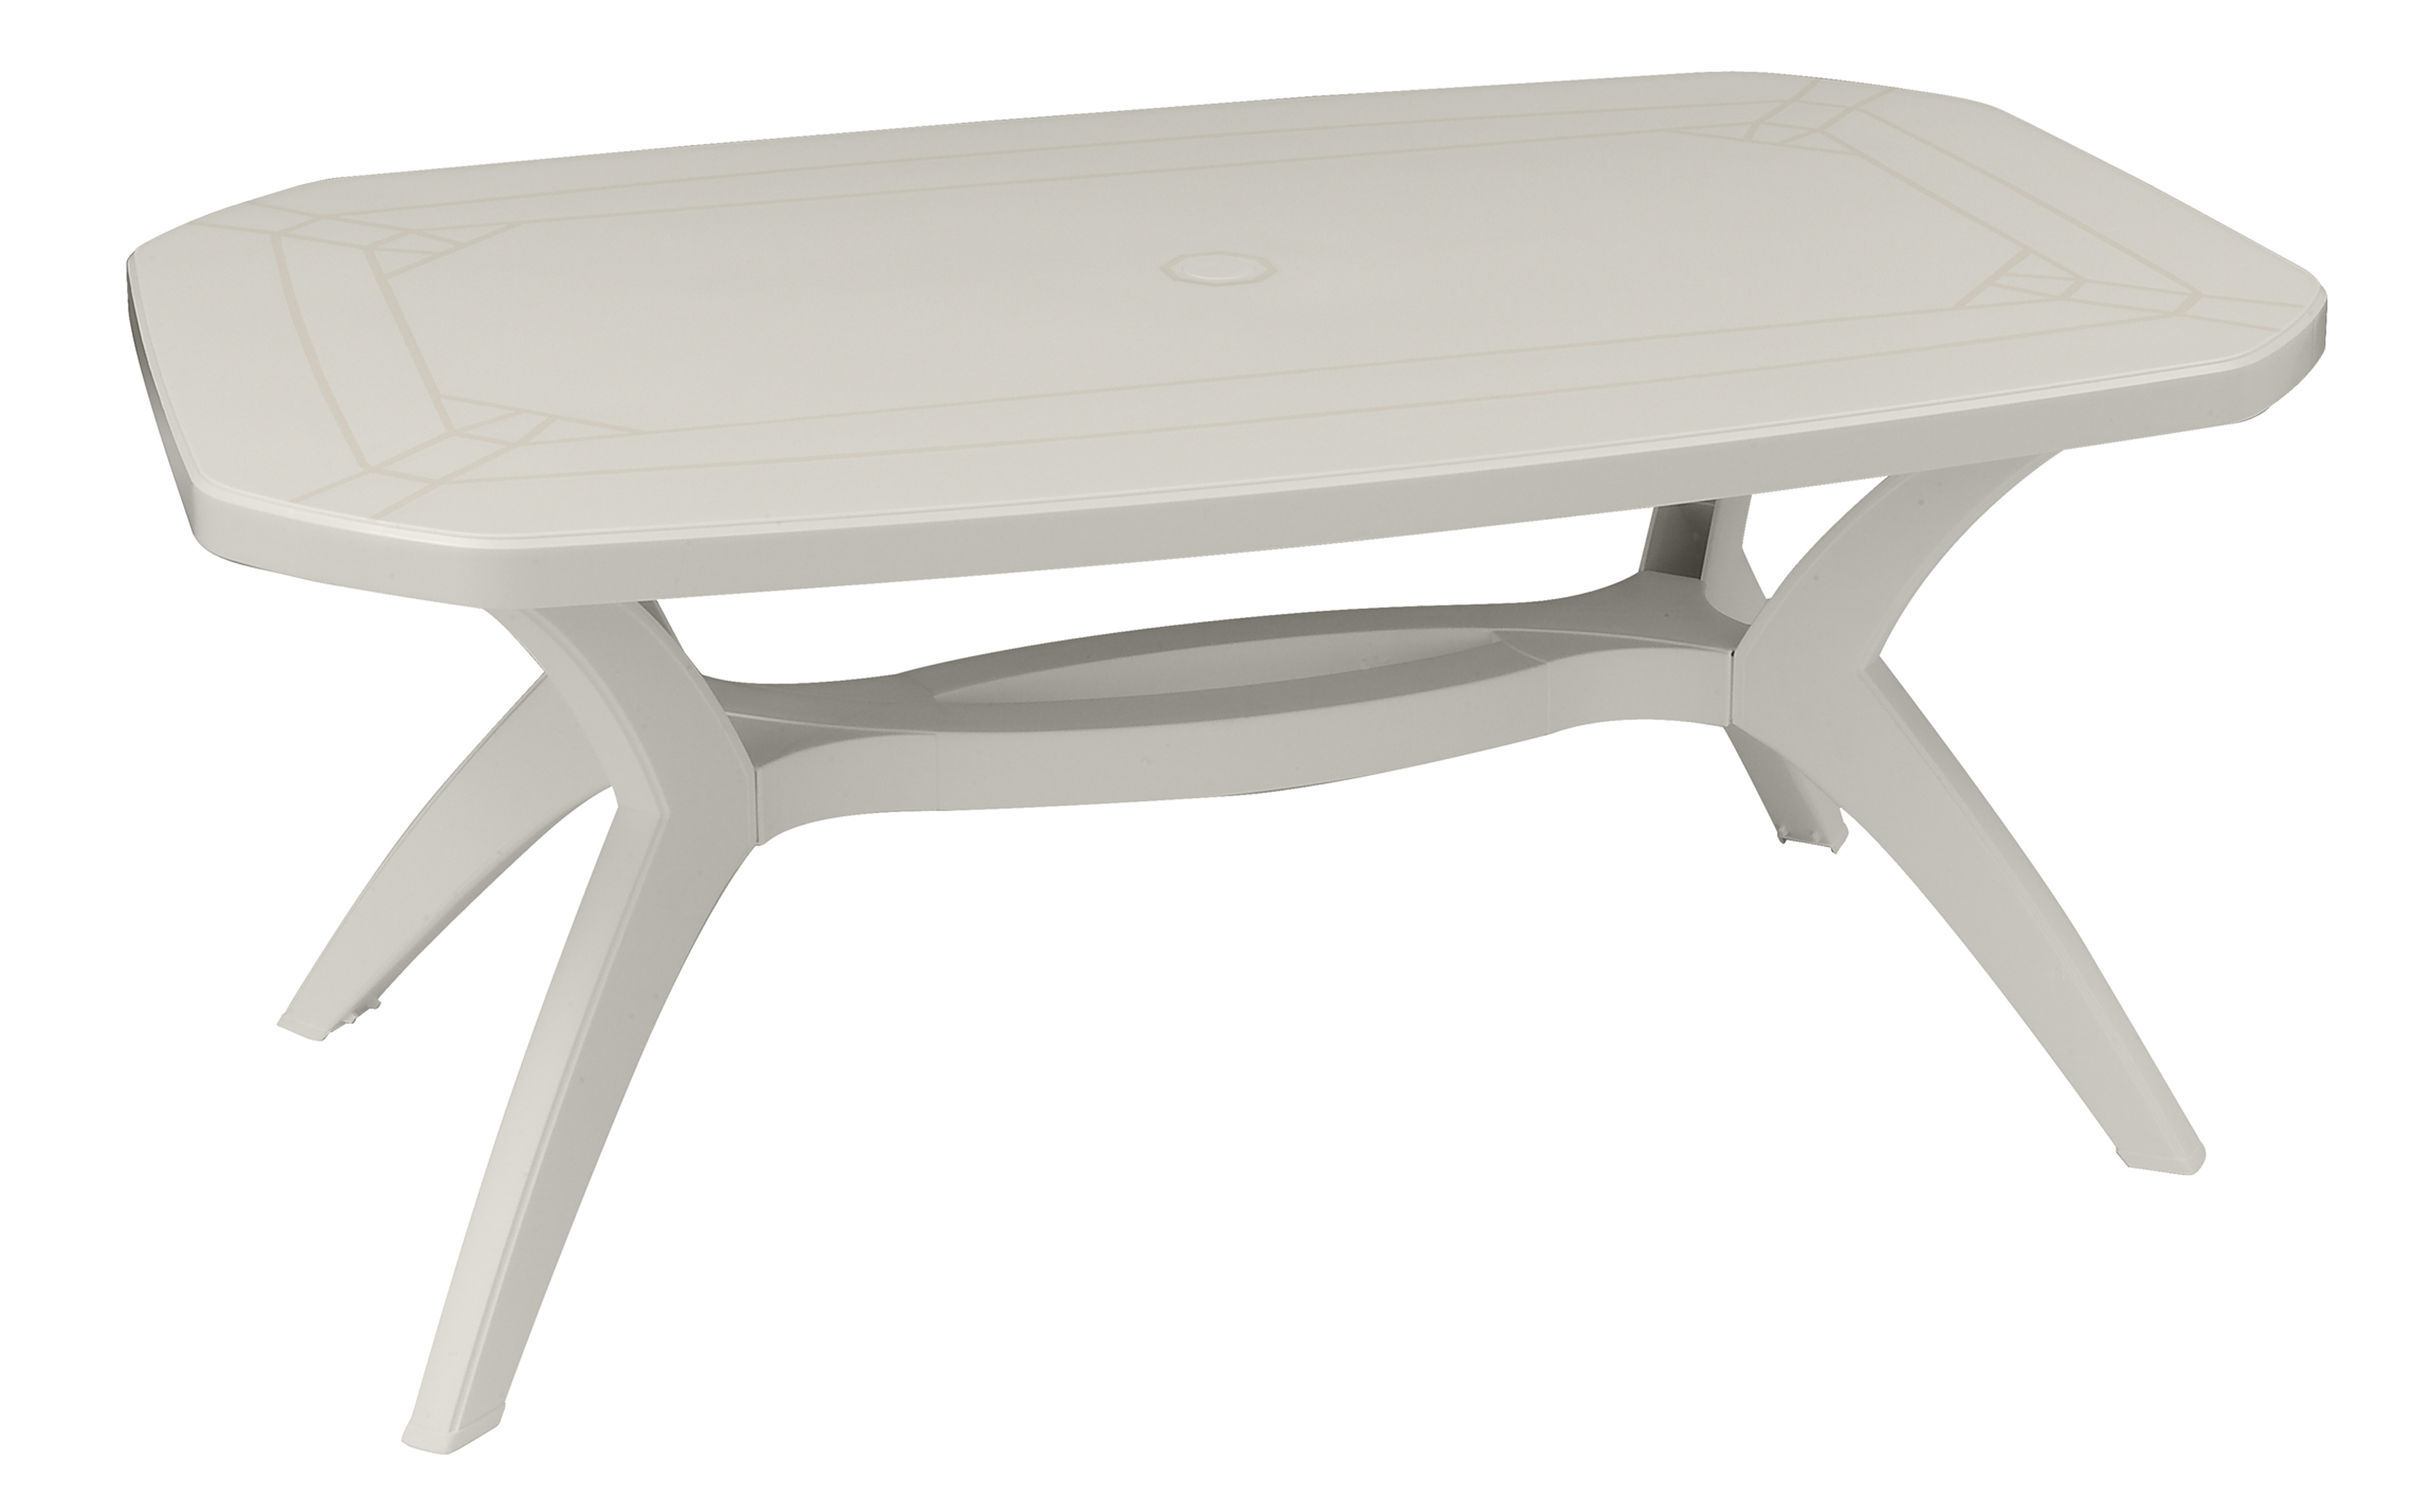 Beautiful Table De Jardin Blanc Pvc Photos - Patriotprotection.us ...